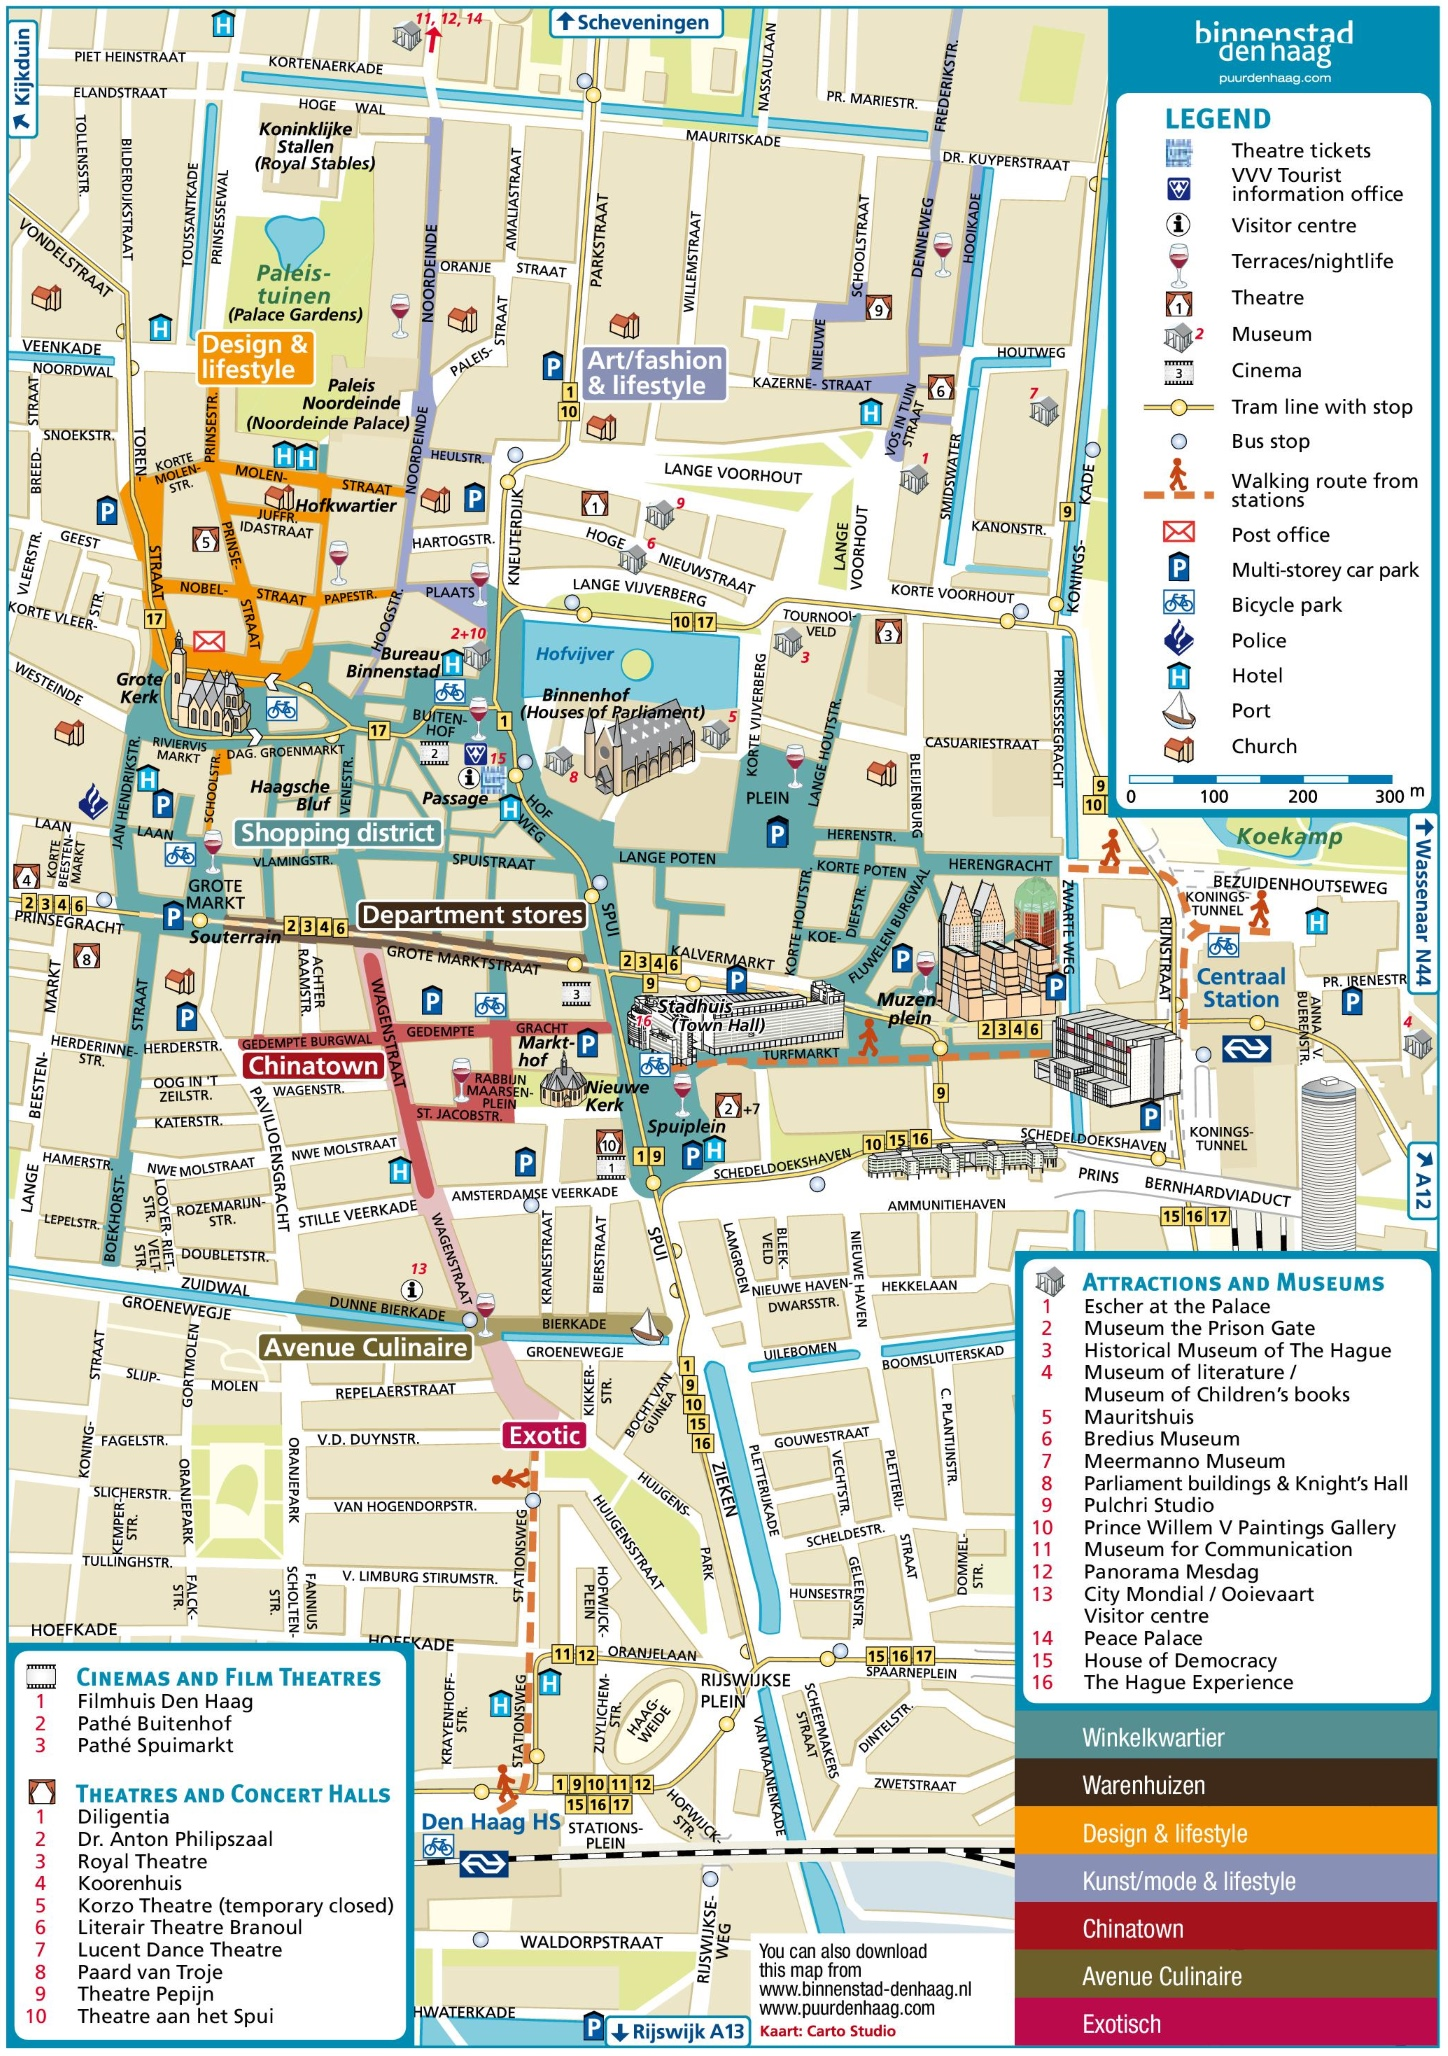 The Hague city center map